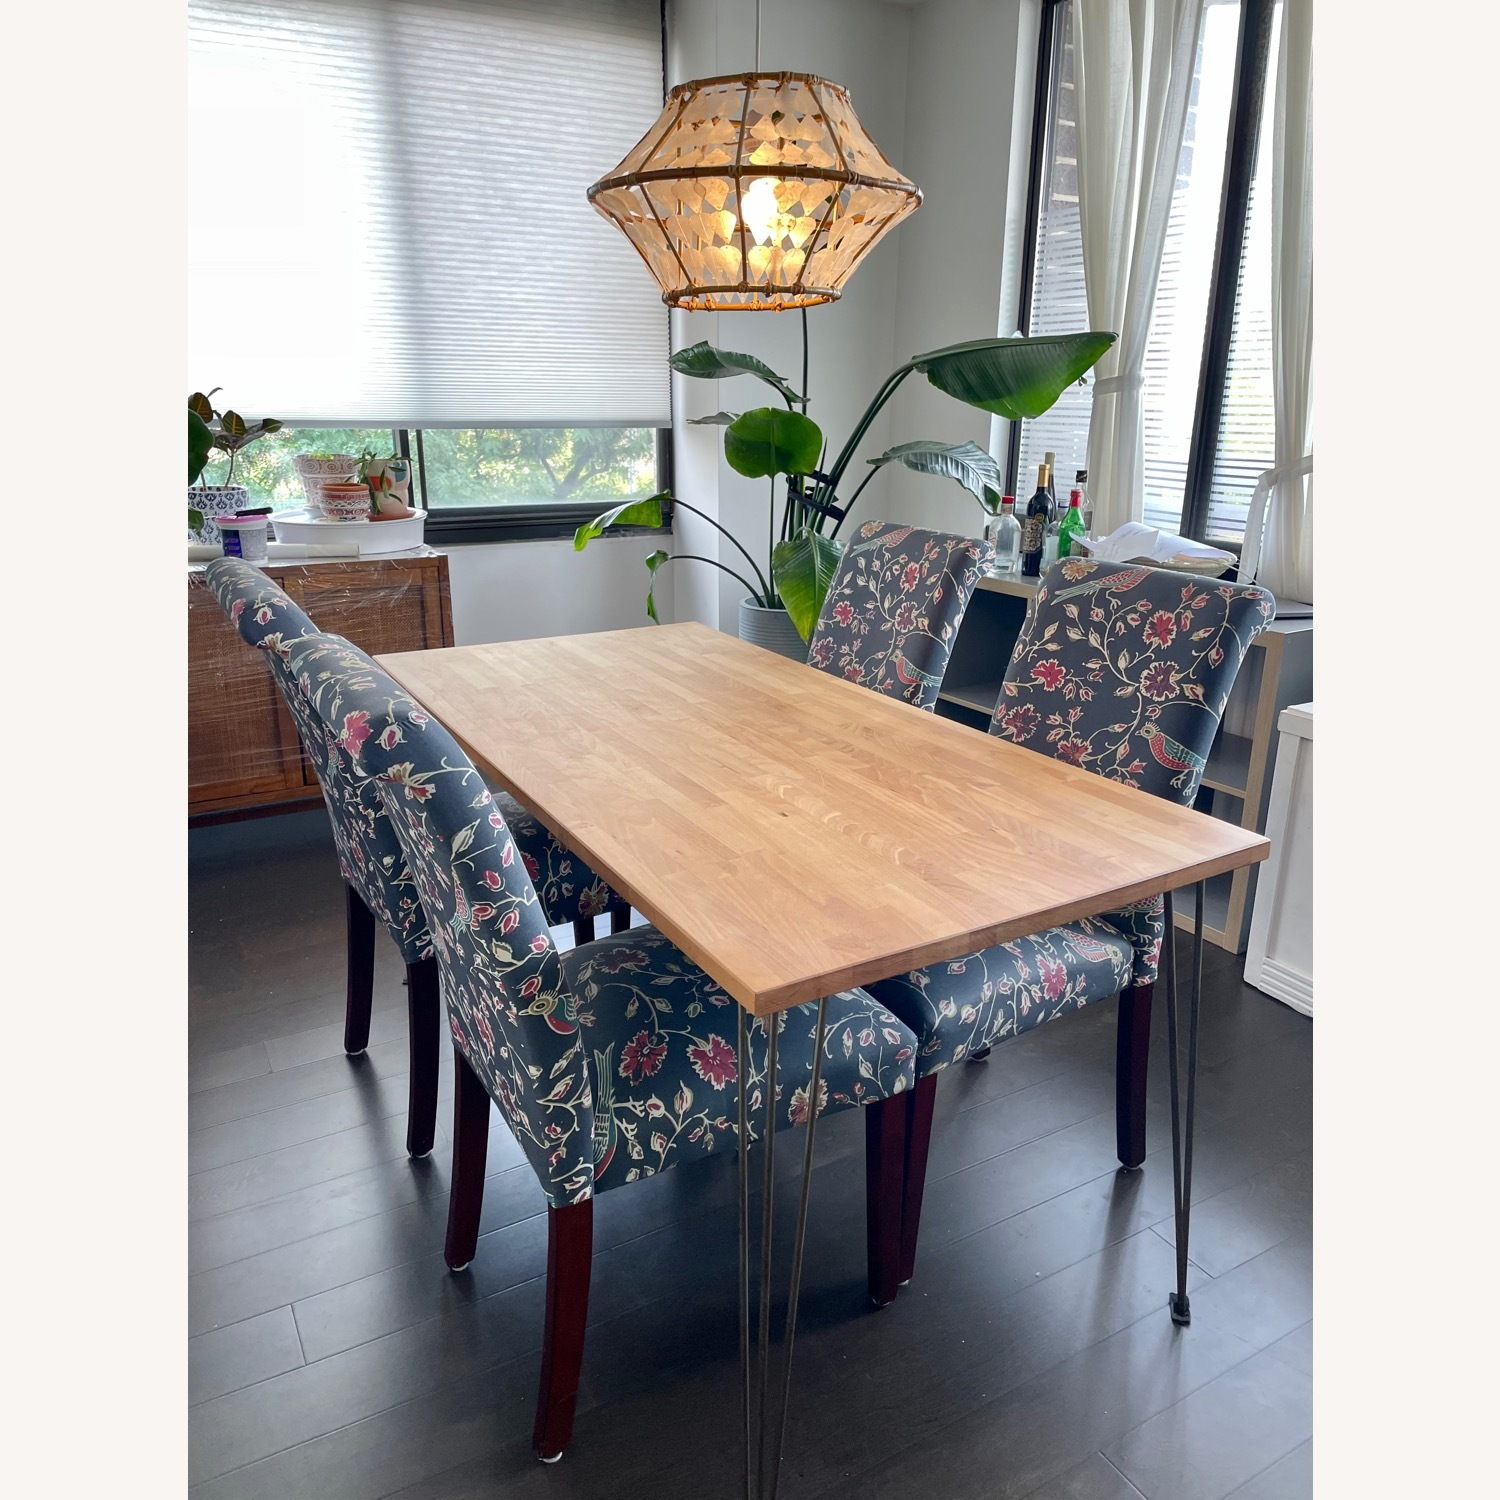 Target Wood Top Dining Table and 4 Matching Chairs - image-1